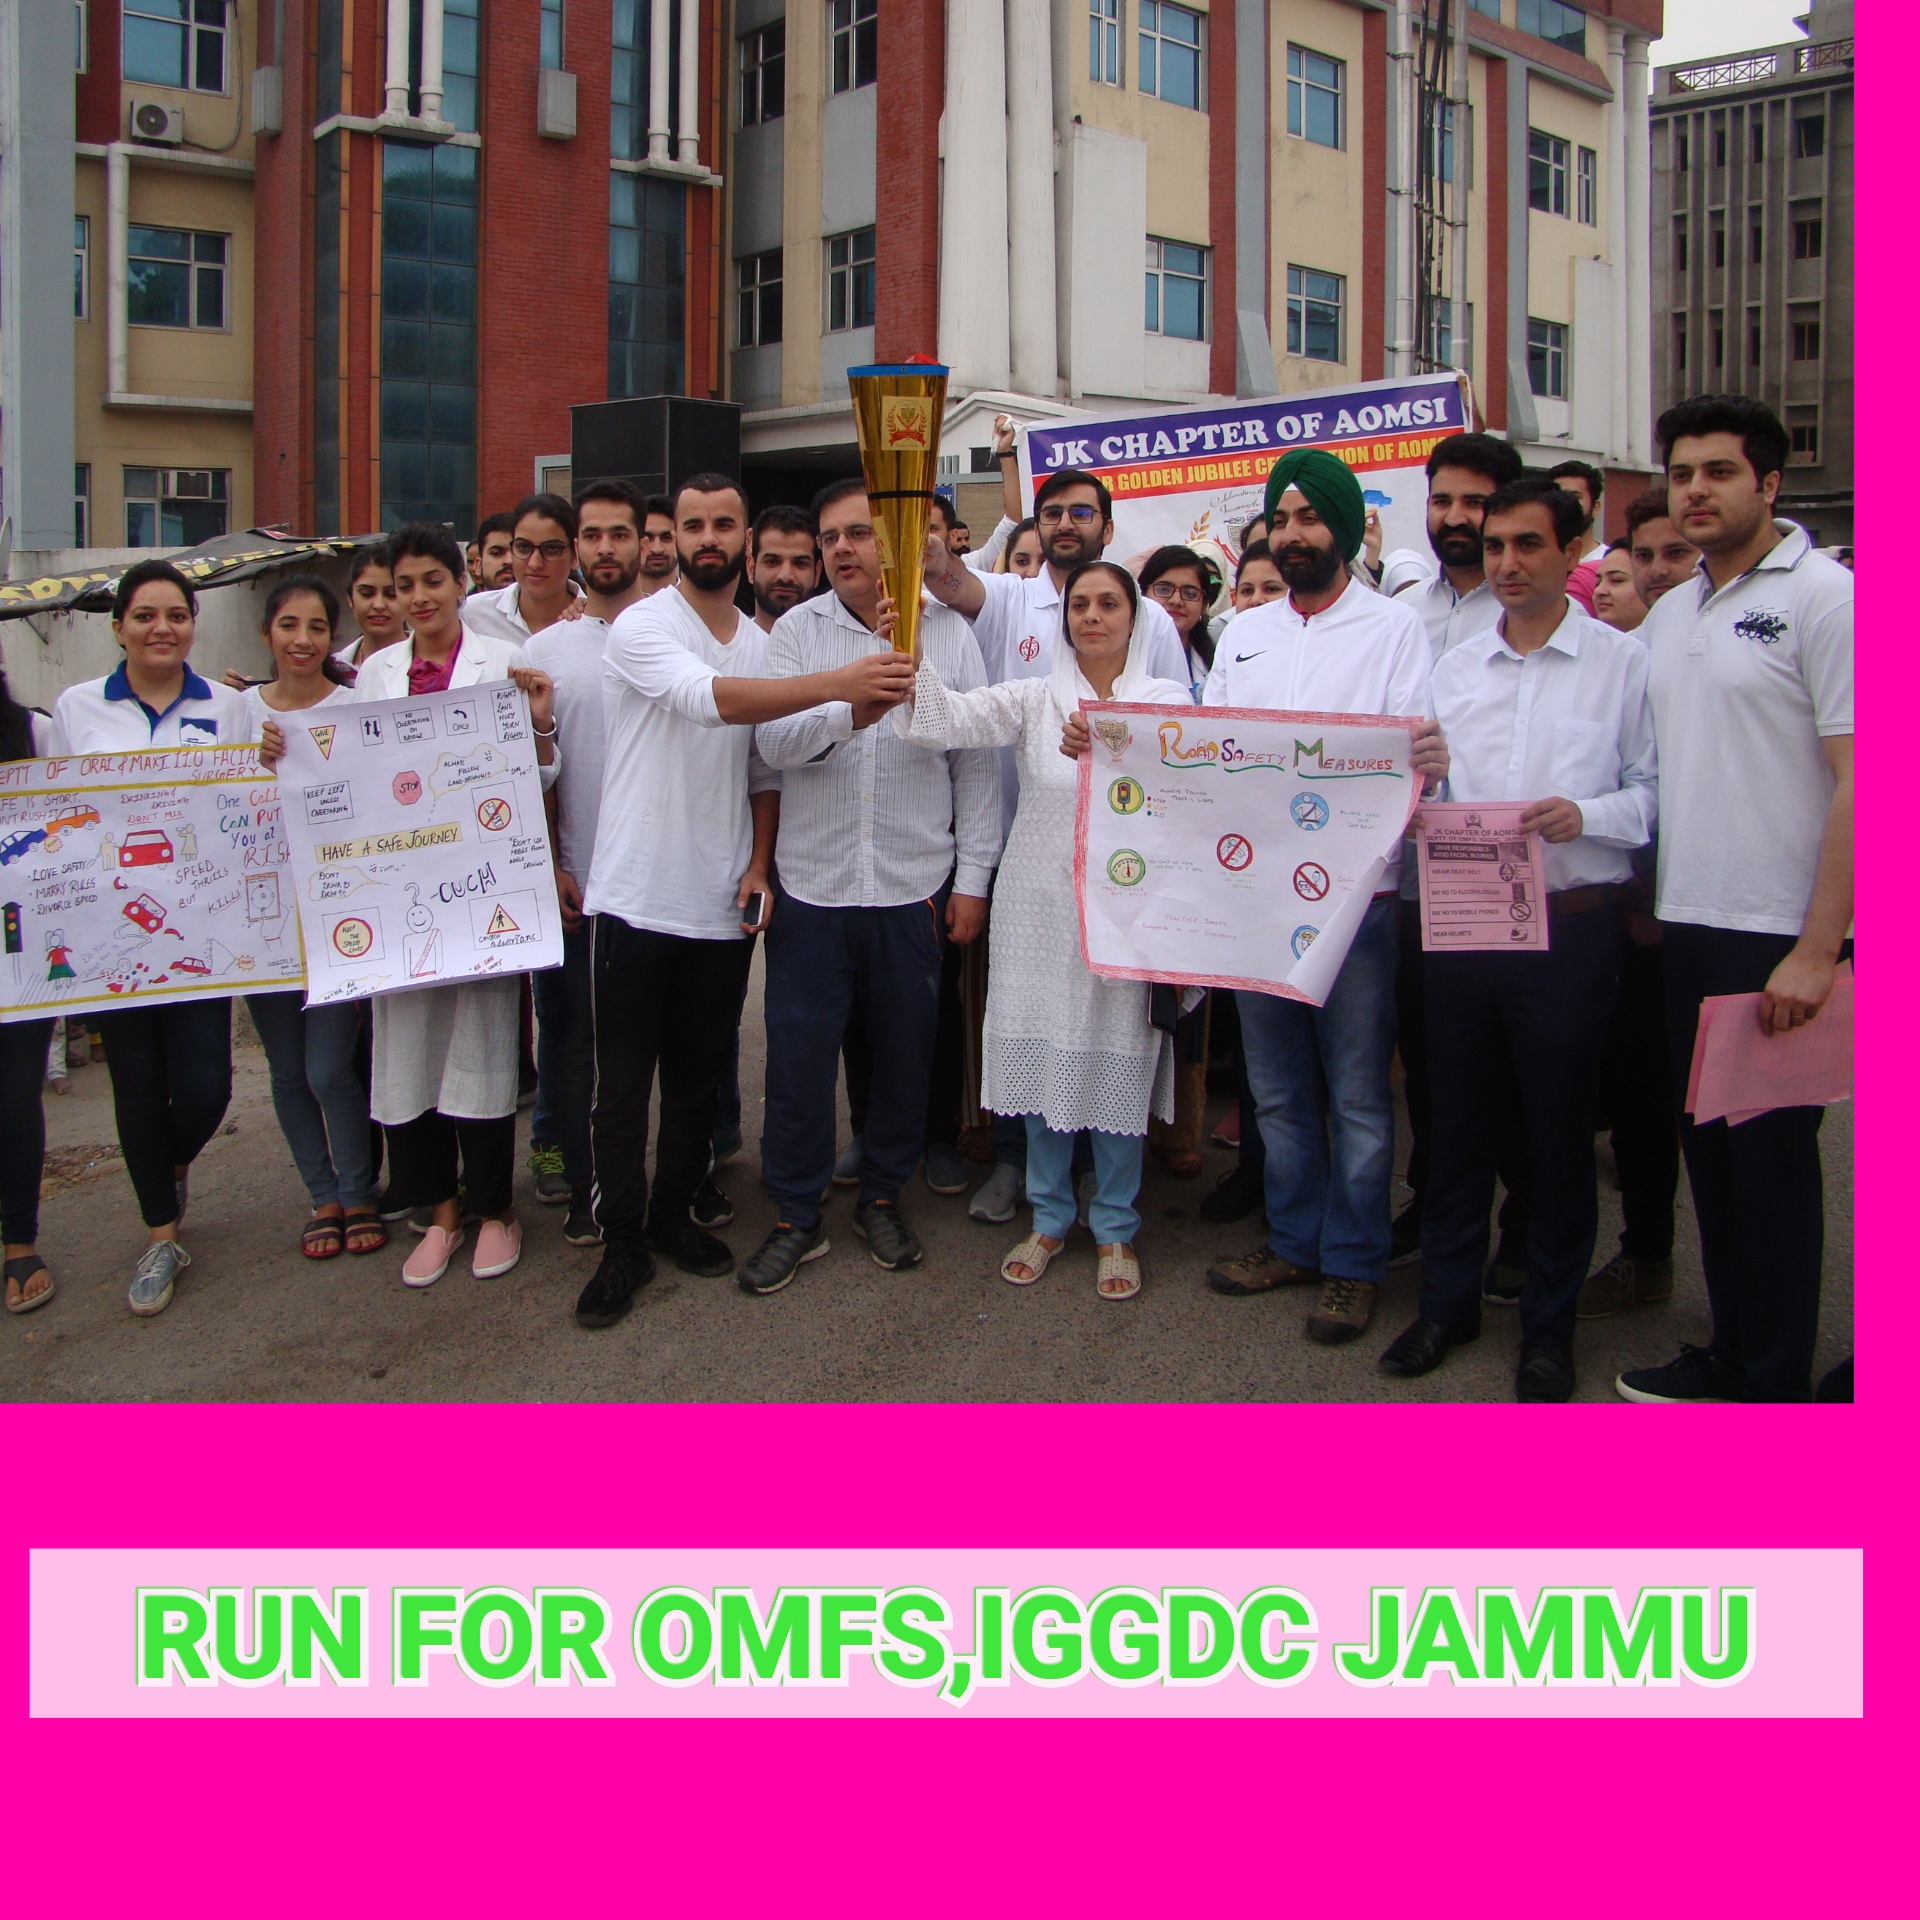 Golden Jublie celebration by Department of OMFS, IGGDC, Jammu